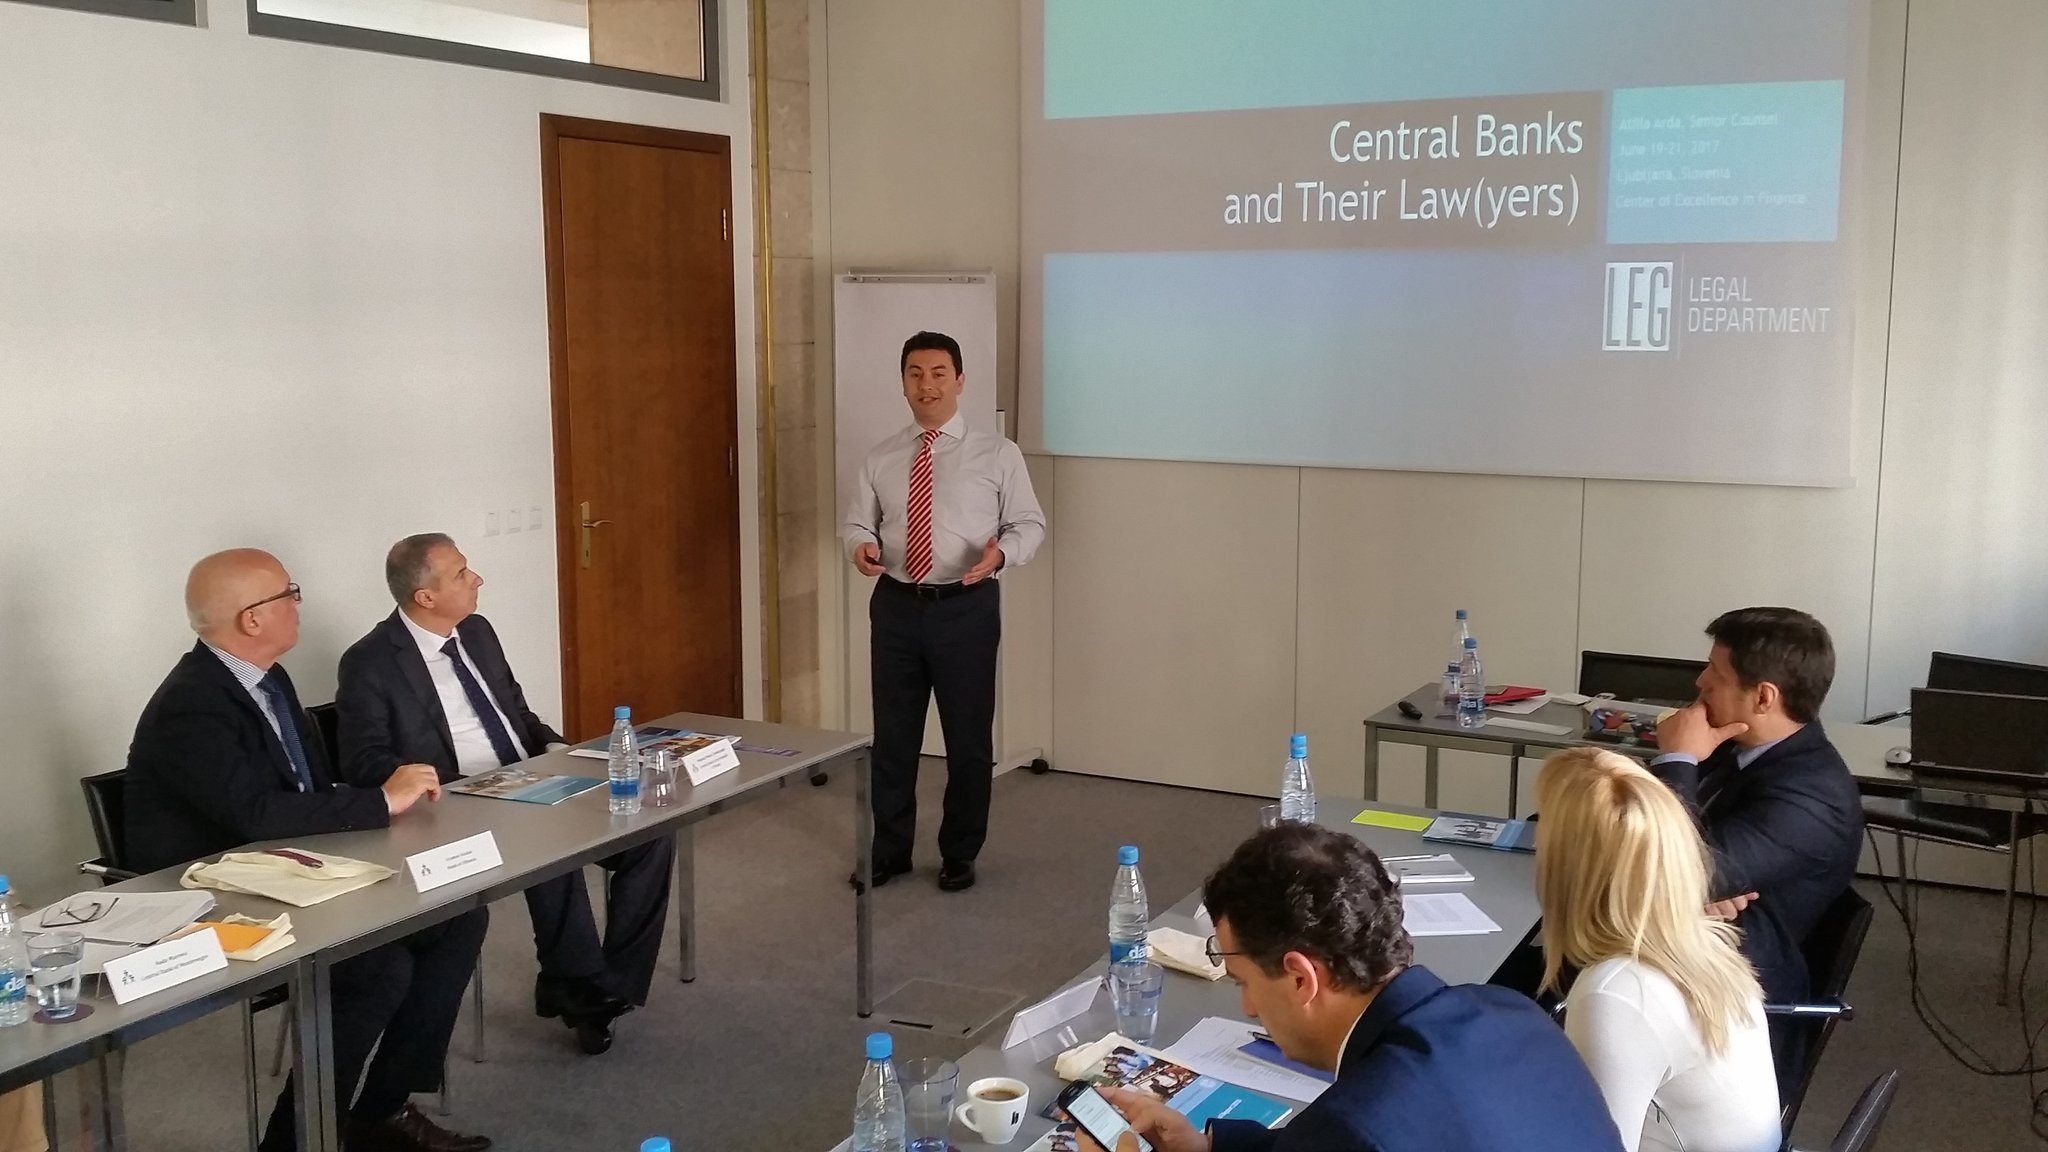 Discussing mandates & #CBgovernance, its legal underpinnings, #CentralBank legal framework with A. Arda @imfcapdev #safeguards #CEFlearning https://t.co/Oz2N9UC4wm